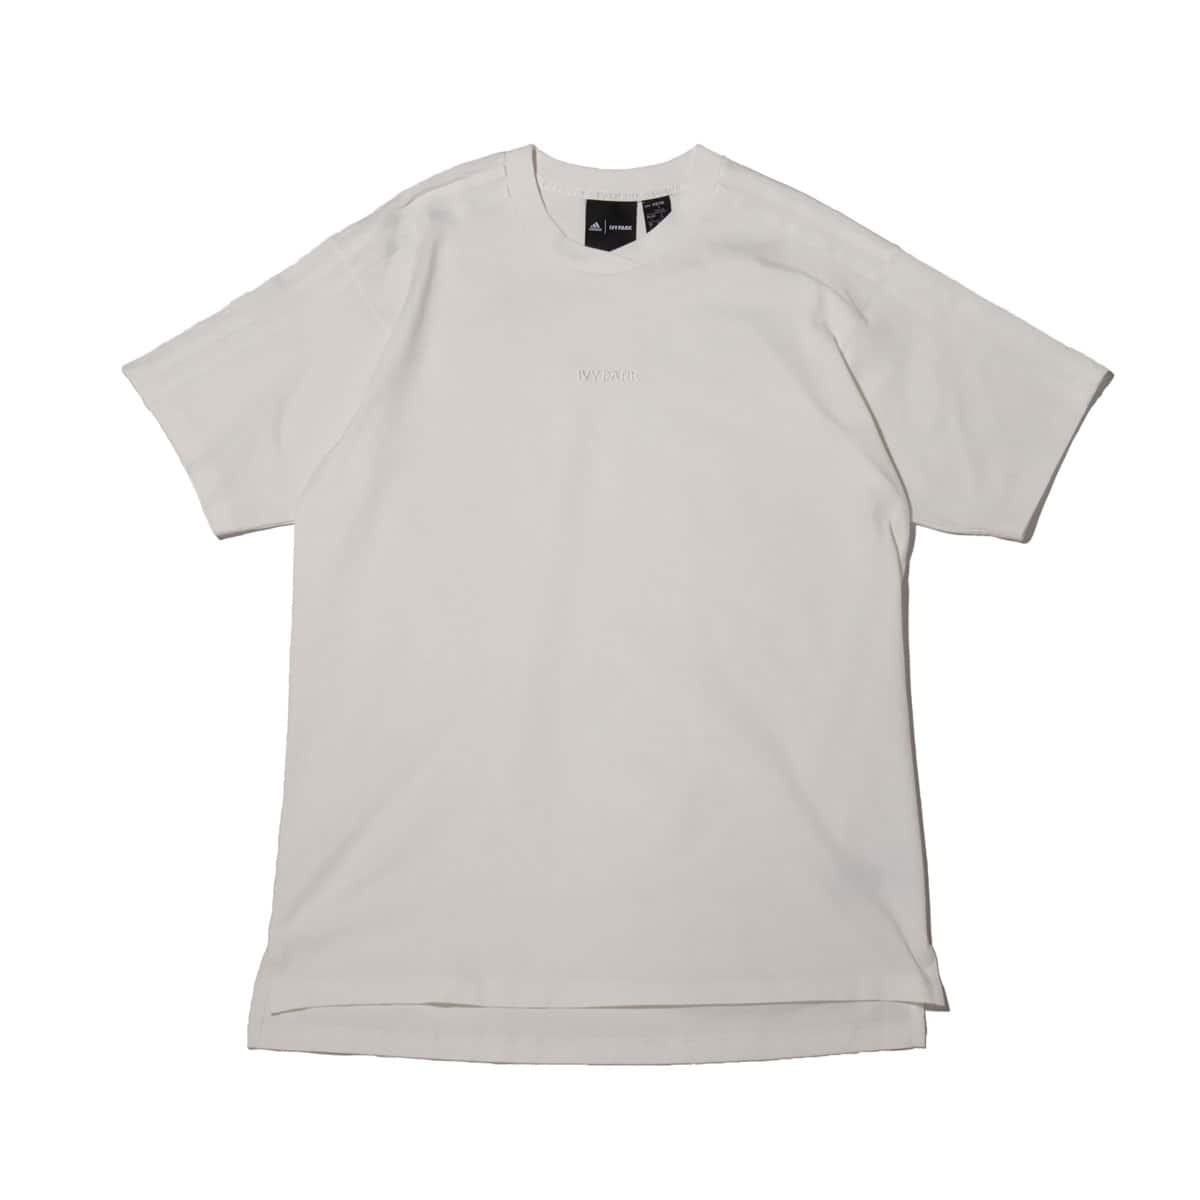 adidas IVP TEE 4ALL CORE WHITE 21SS-S_photo_large